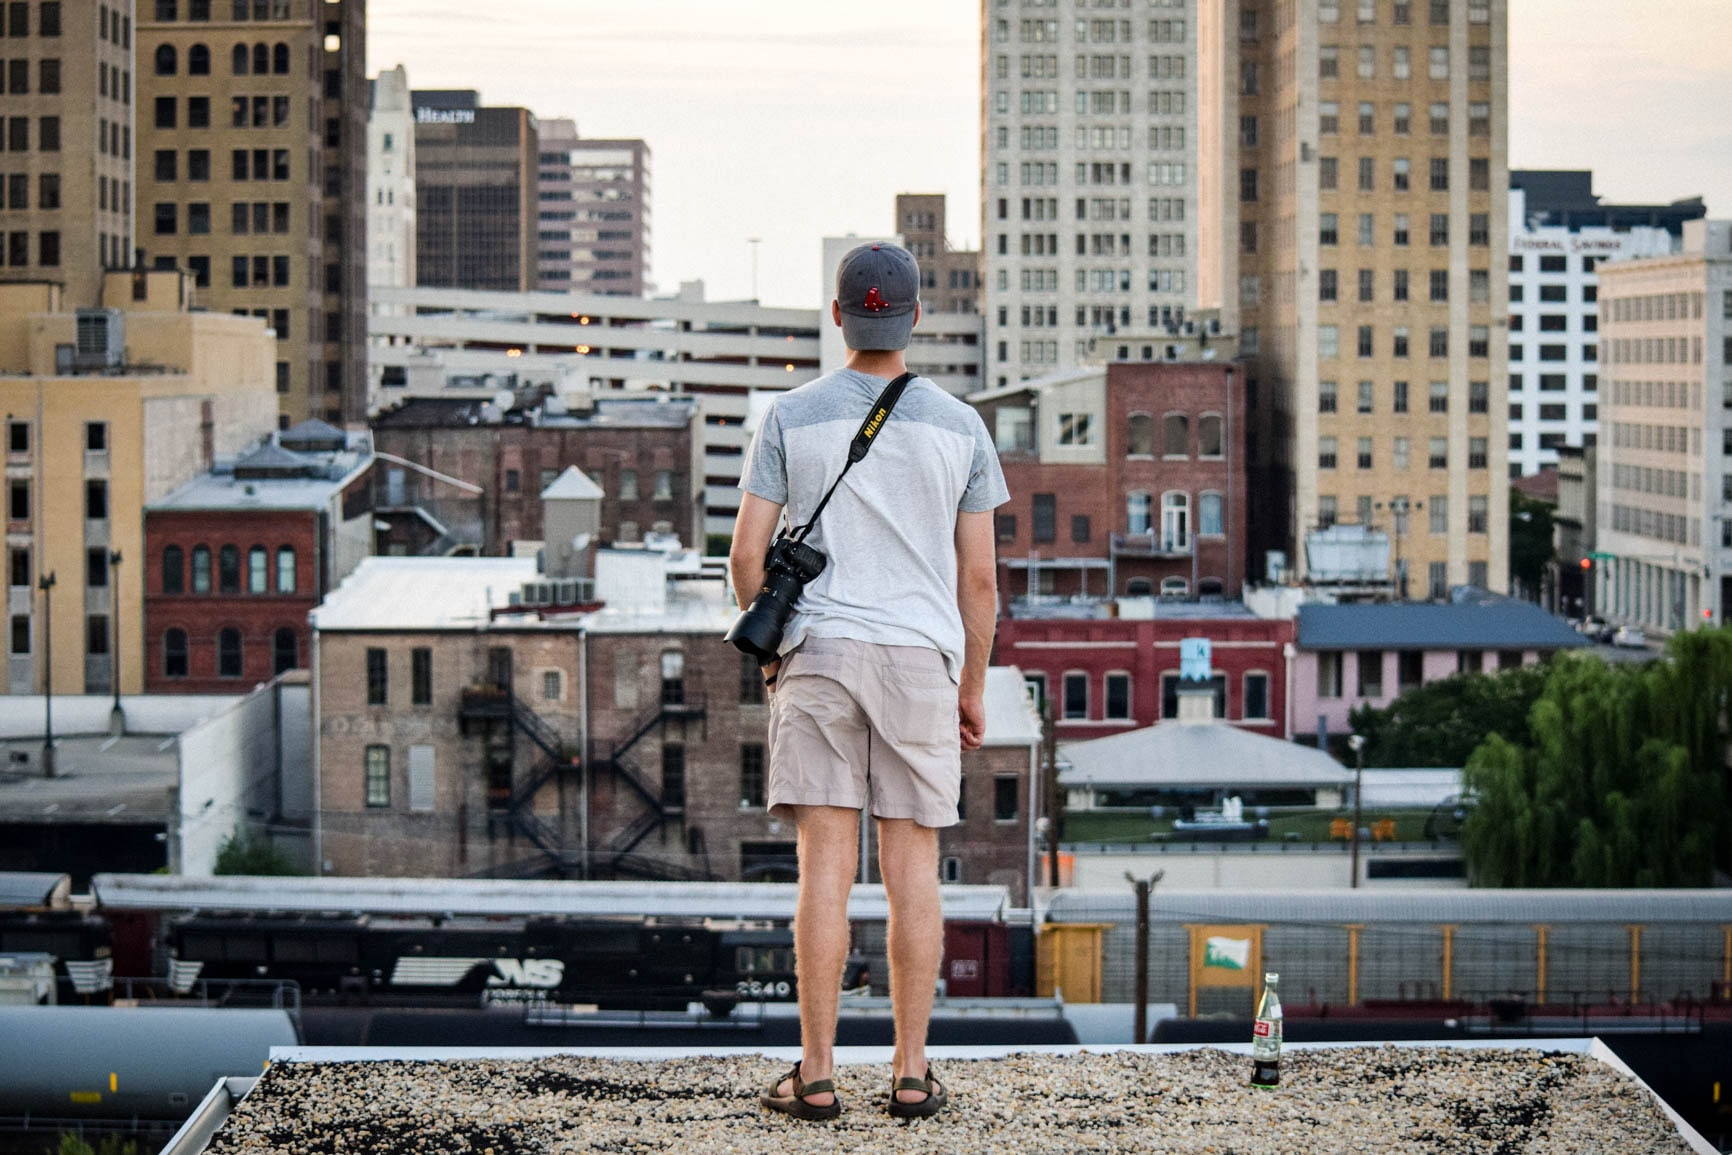 A person in a backwards cap with a camera stands on a rooftop overlooking a city